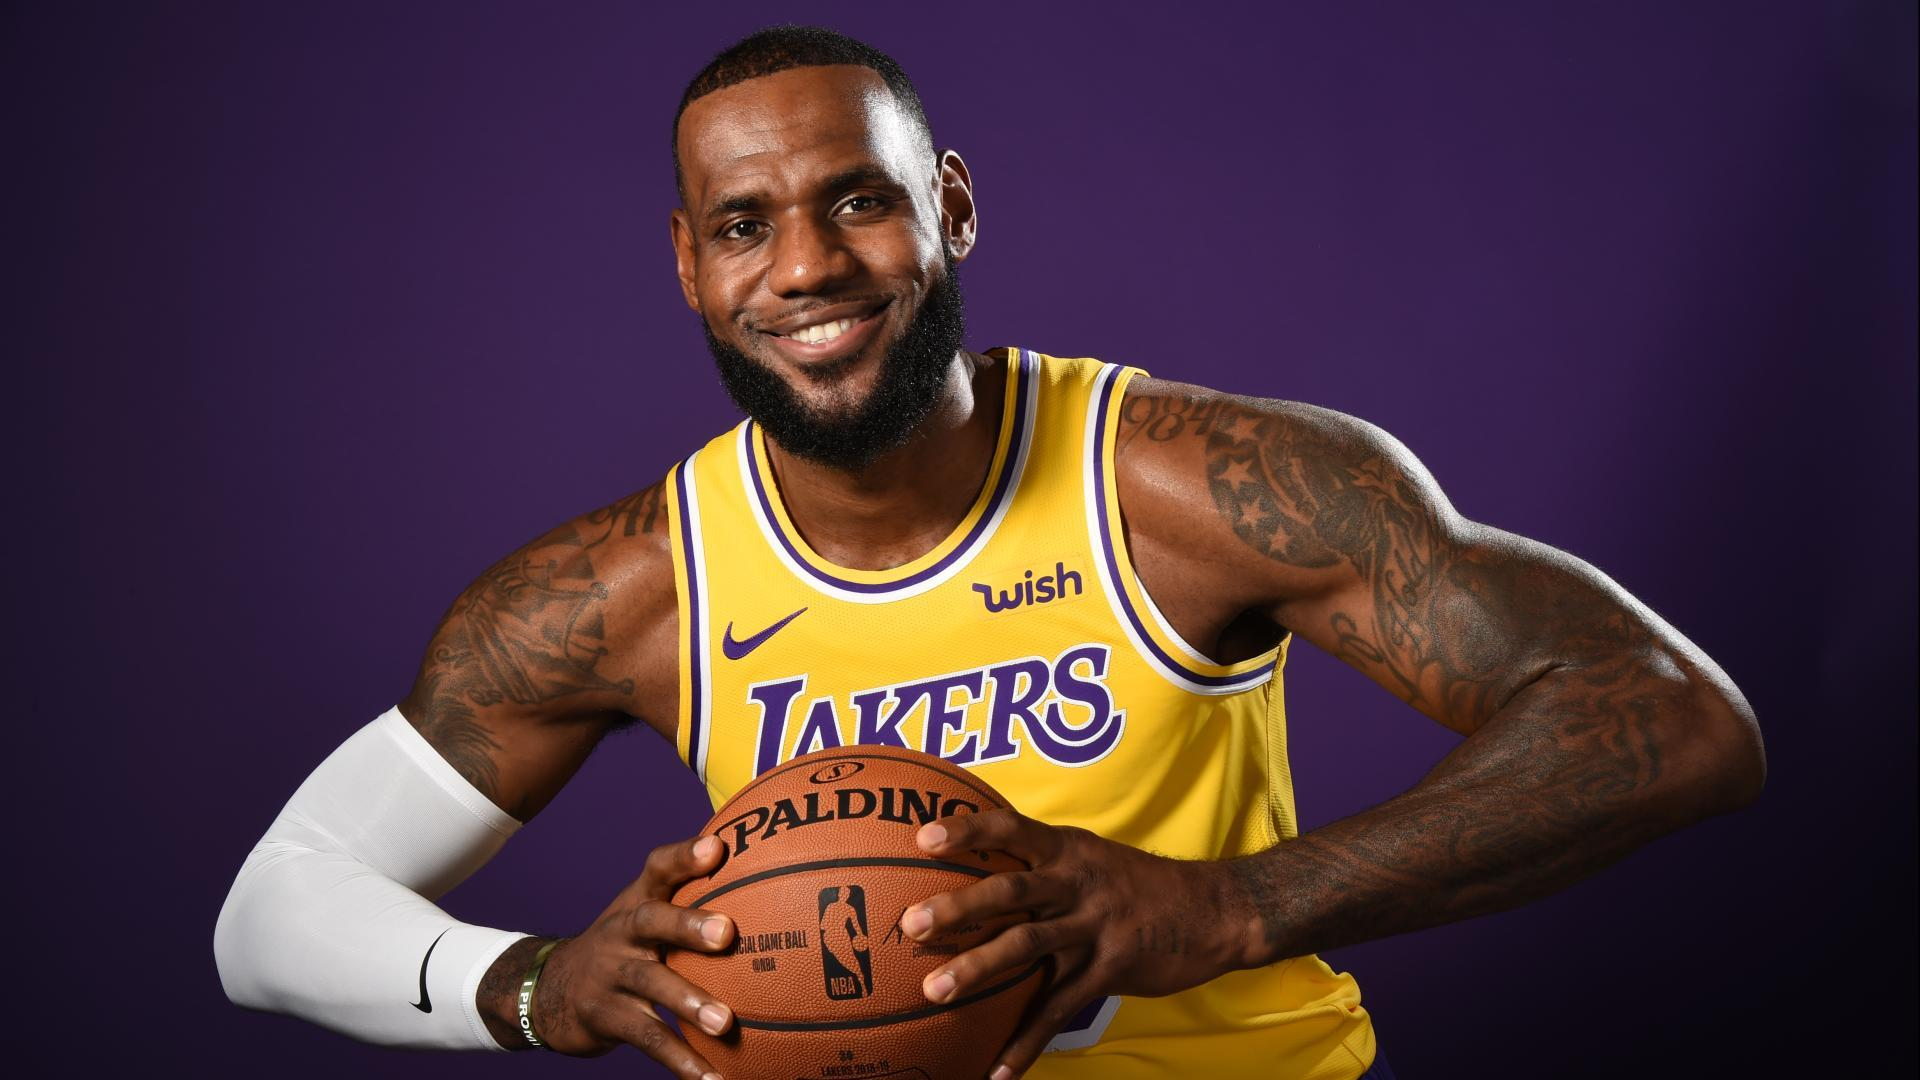 LeBron James Sinks 40-ft Shot To Beat The Clock For Lakers